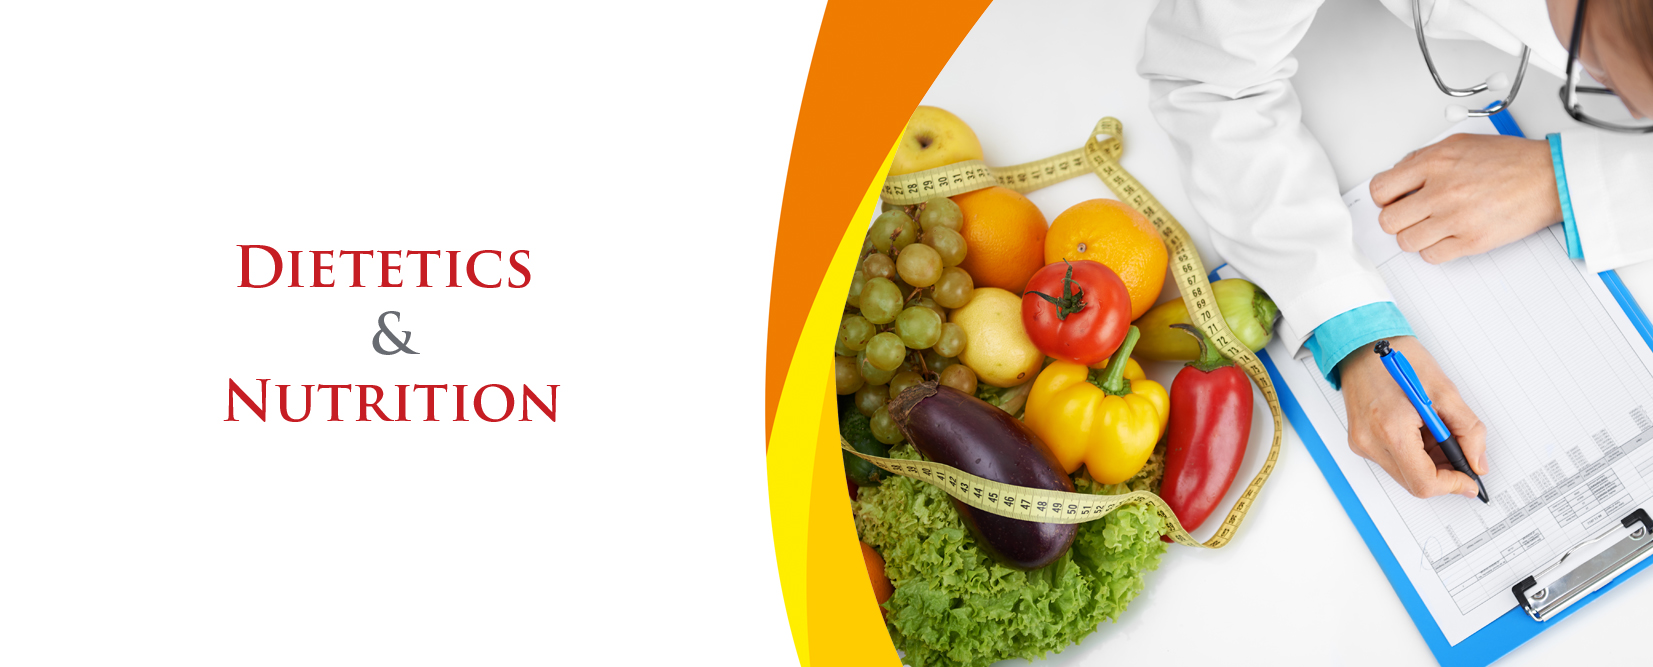 Dietetics And Nutrition Nutrition Therapy Services Offered